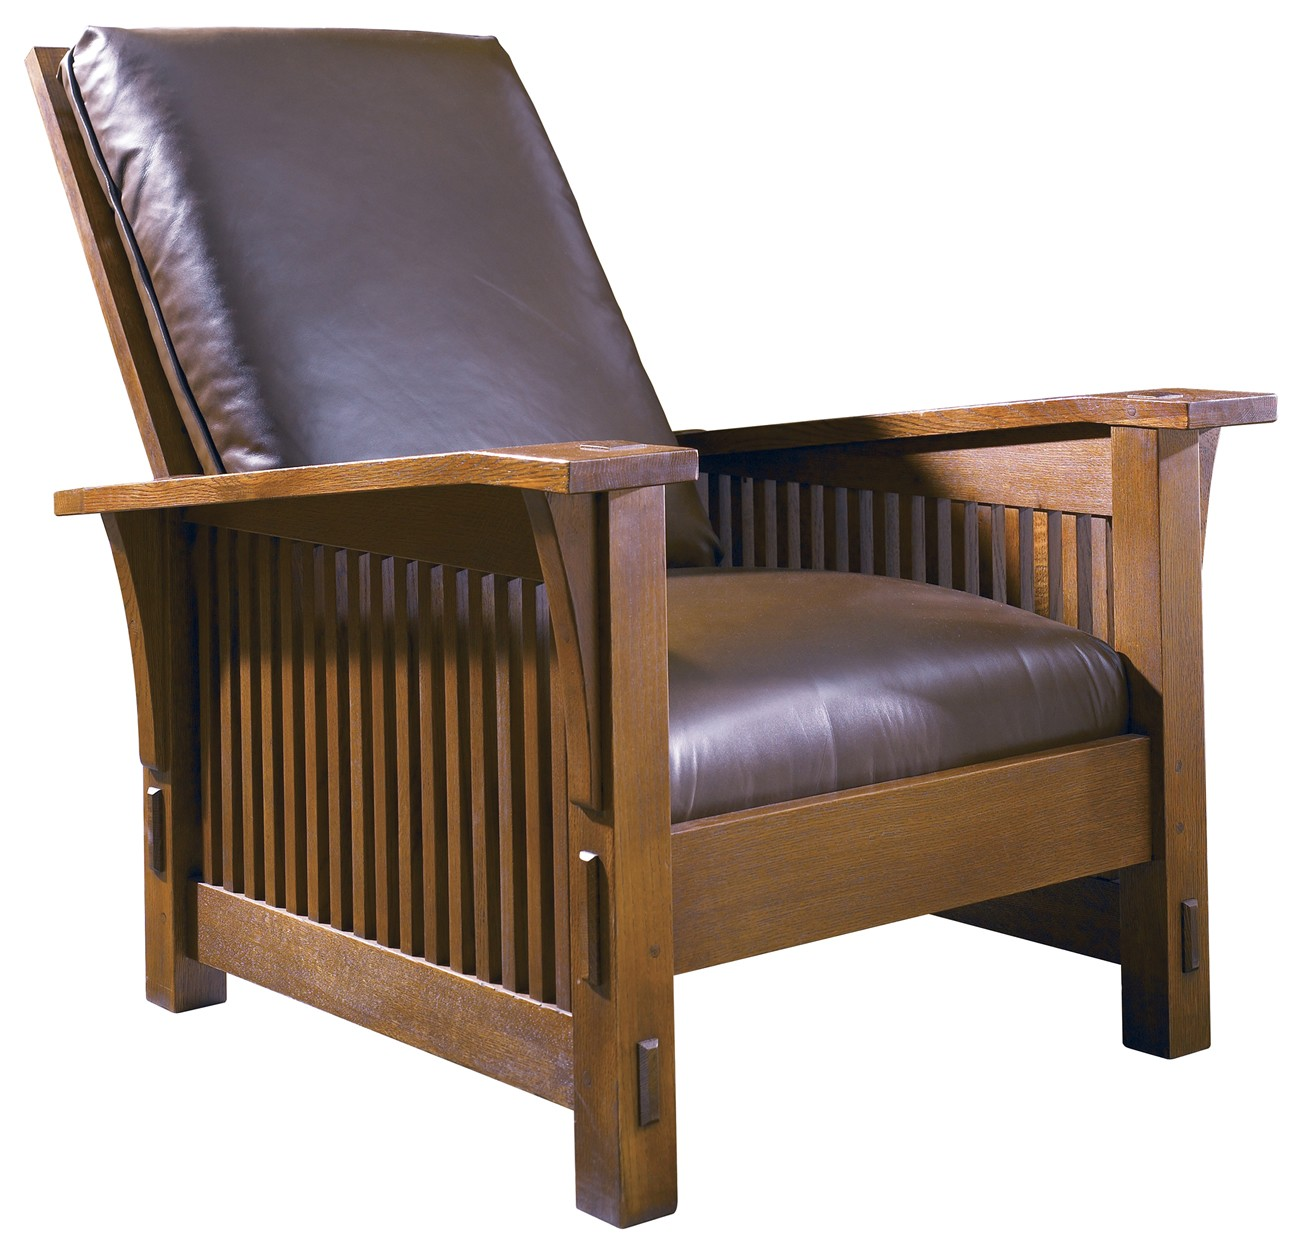 89-369-LC-032 Spindle Morris Chair Loose Cushion